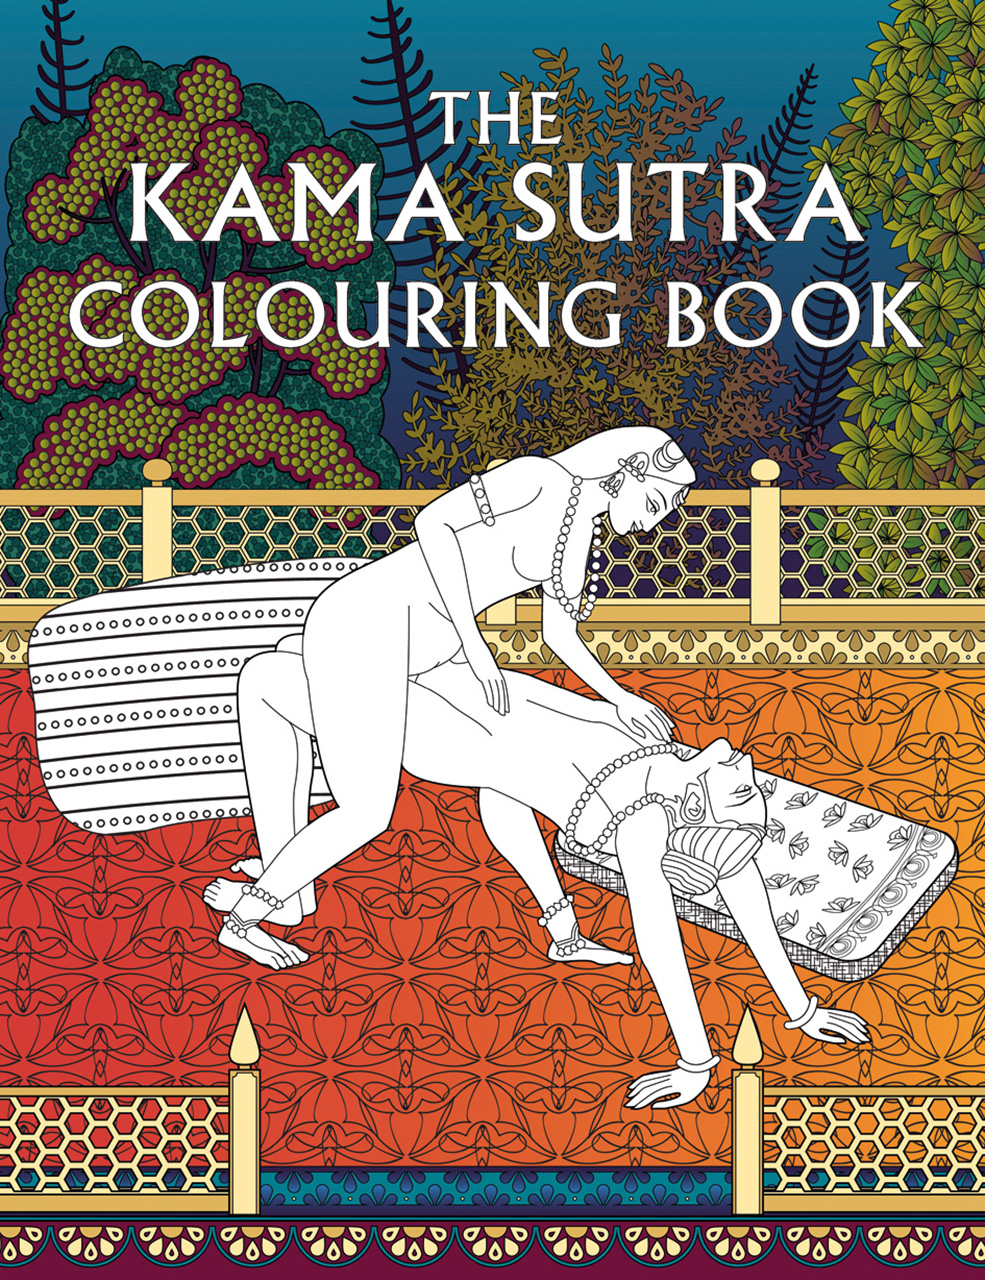 The Kama Sutra Colouring Book, Press